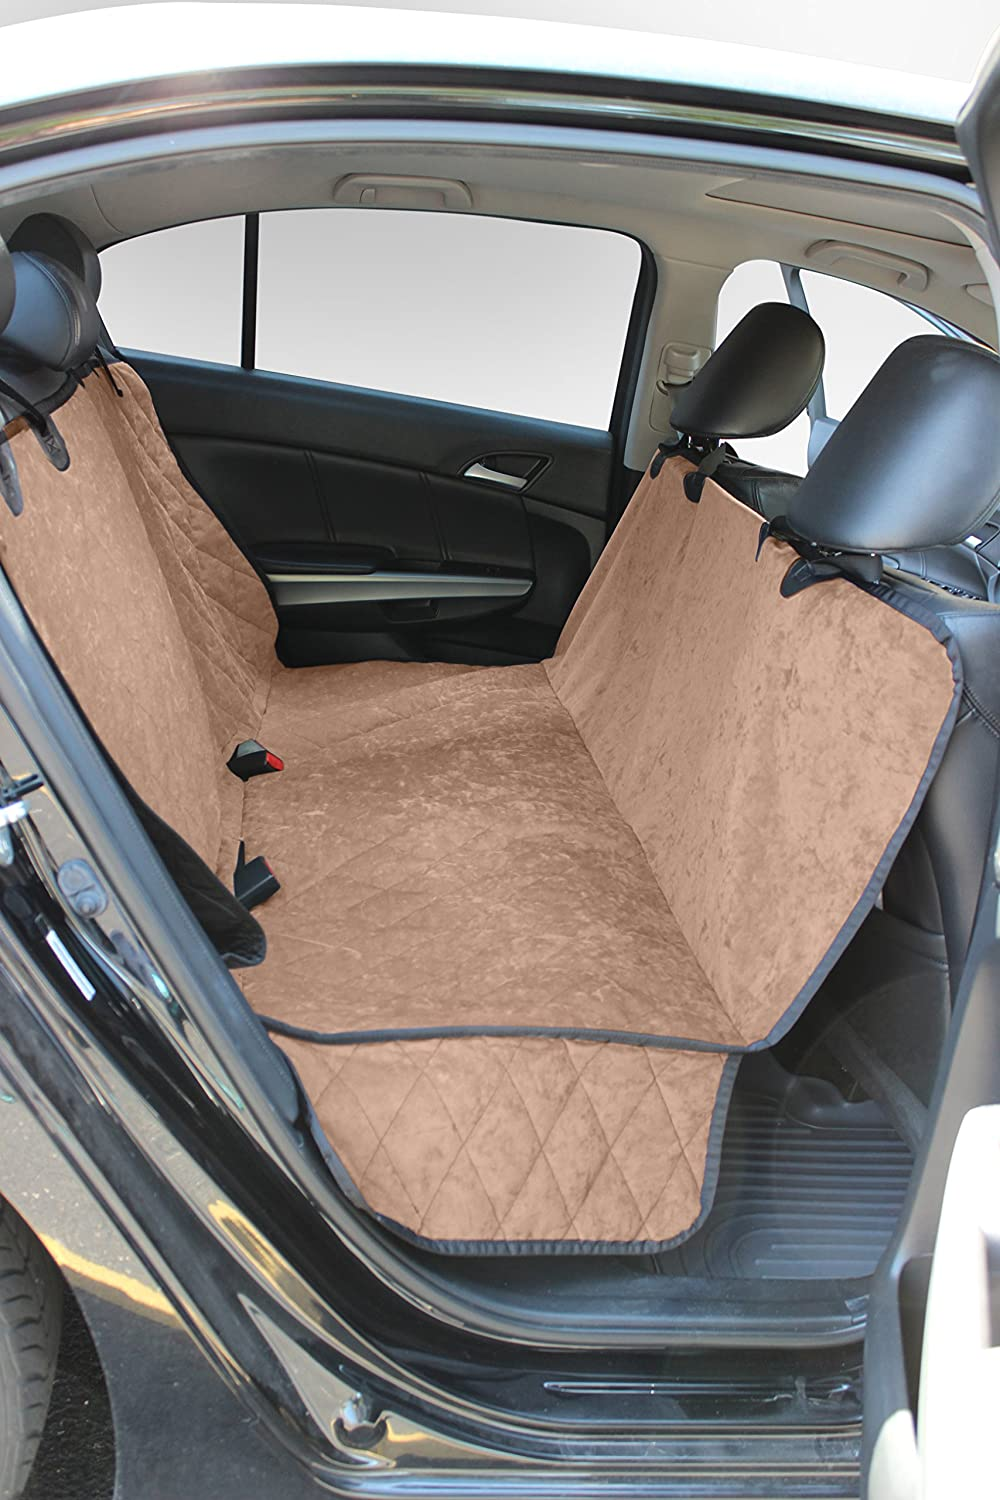 Iced Mocha Buddyrest Smart Suede Hammock Style Seat Predector, Iced Mocha color, Crypton Suede Performance Fabric, Stays Clean, Repels Odors and Rarely Needs Washing, Made in the USA, Infused With Kevlar Thread